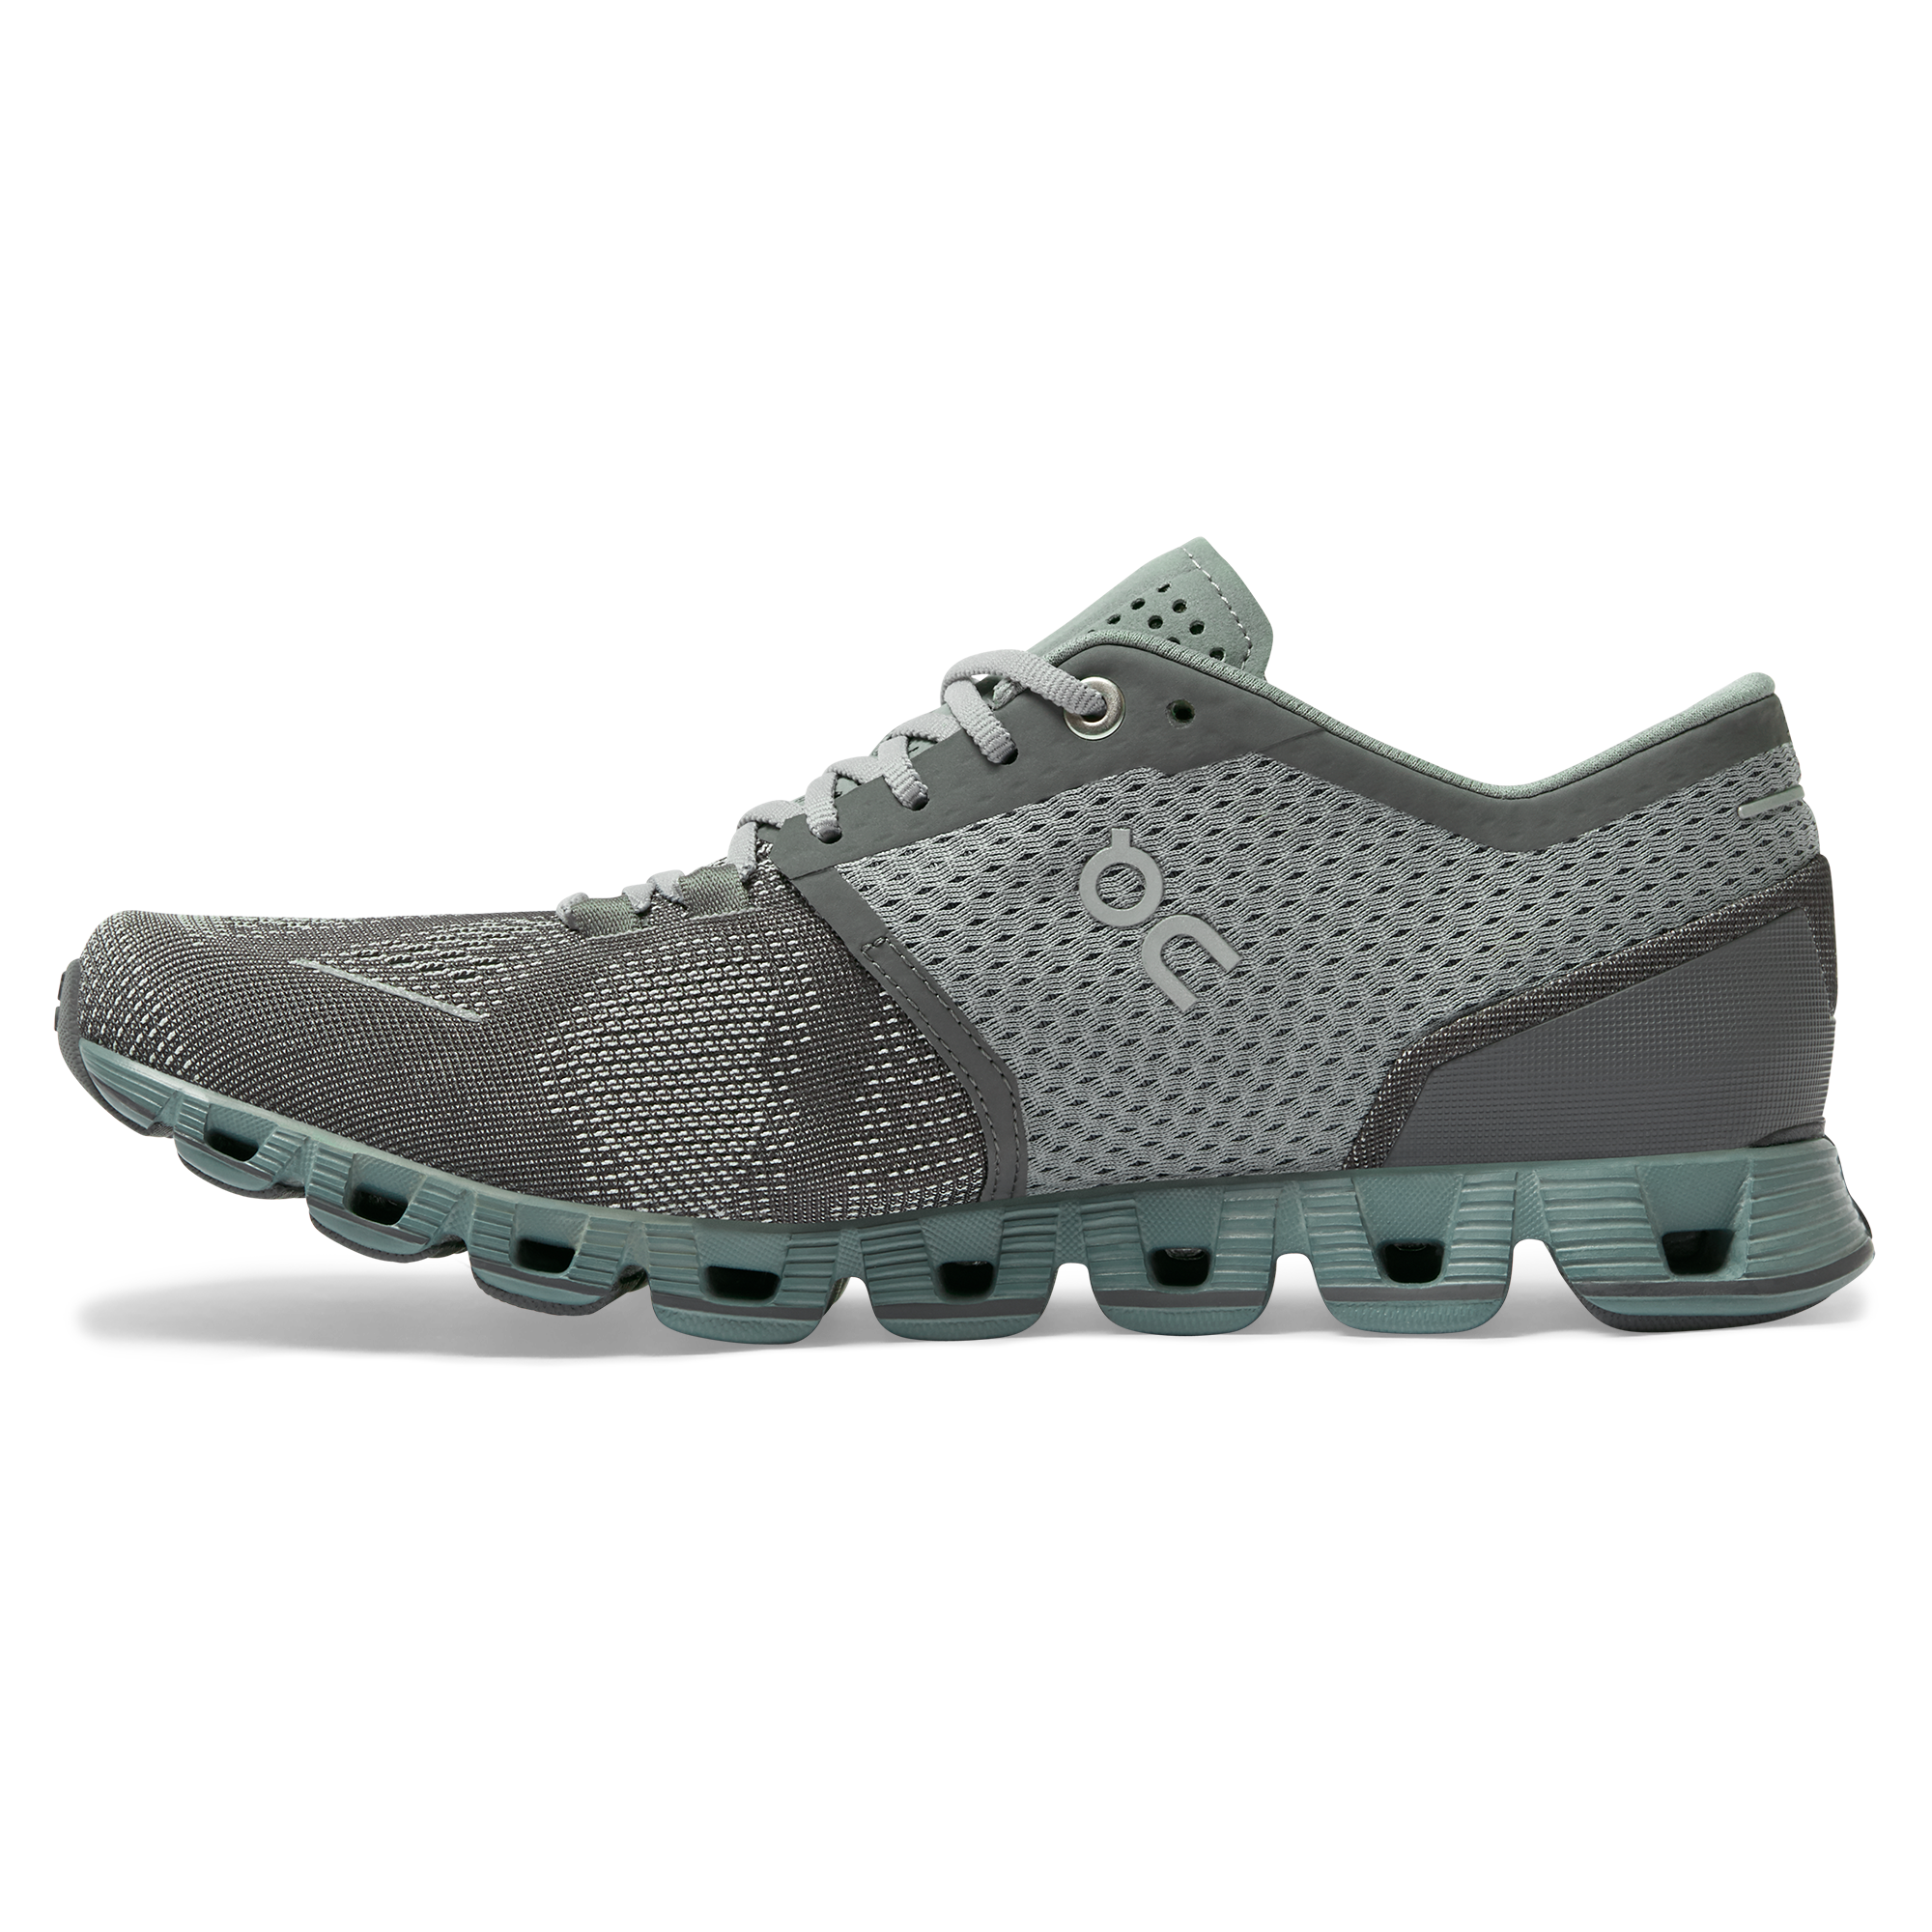 Cloud X Workout & Training Shoe | On